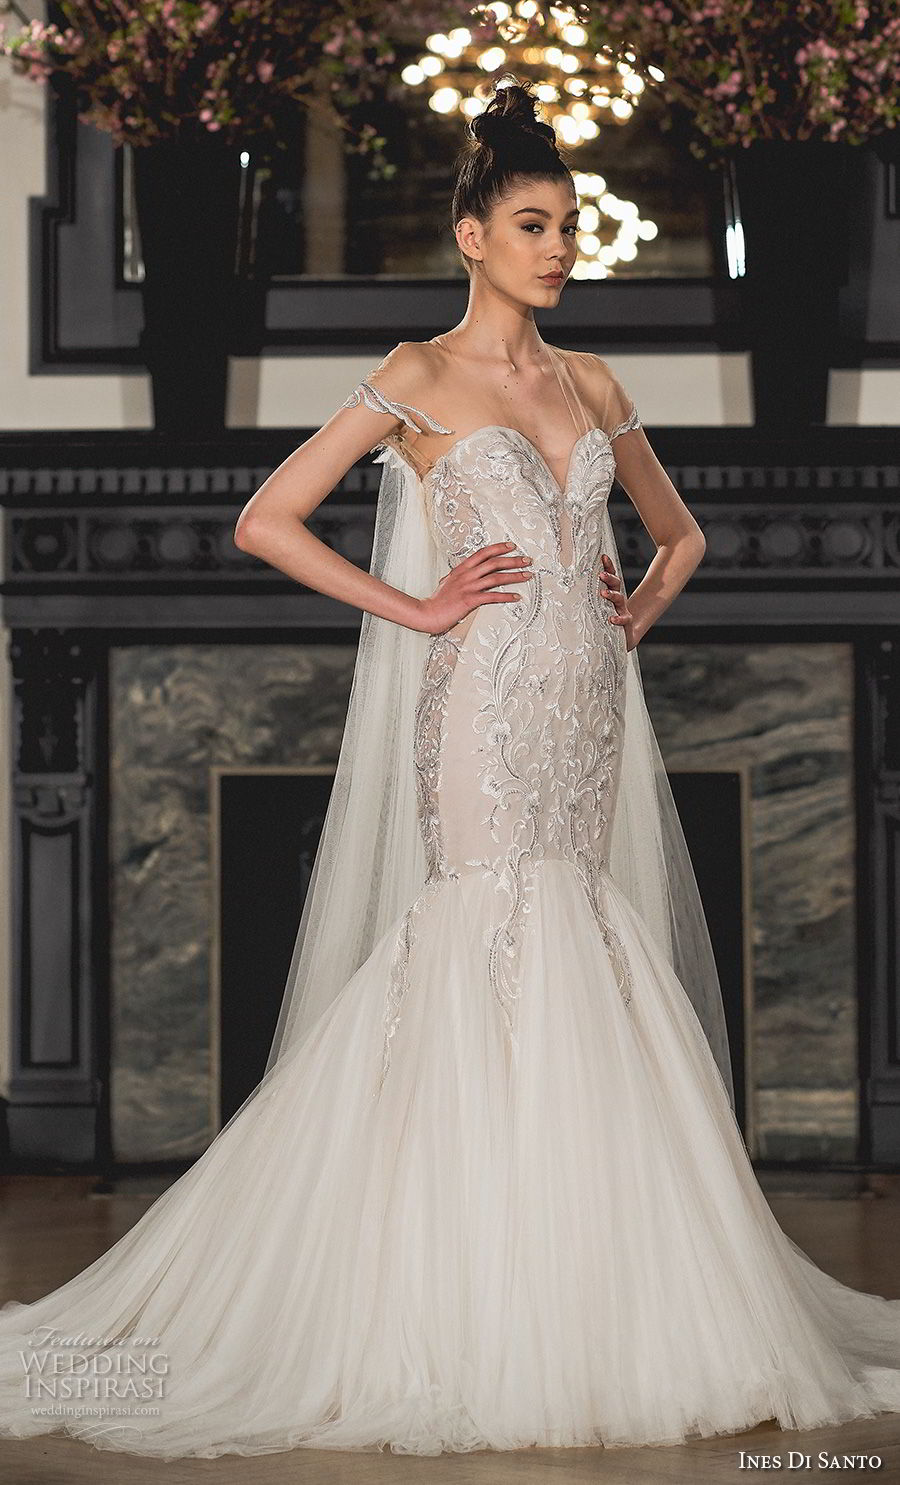 ines di santo spring 2019 bridal cap sleeves sheer v sweetheart neckline heavily embellished elegant glamorous mermaid wedding dress chapel train (19) mv